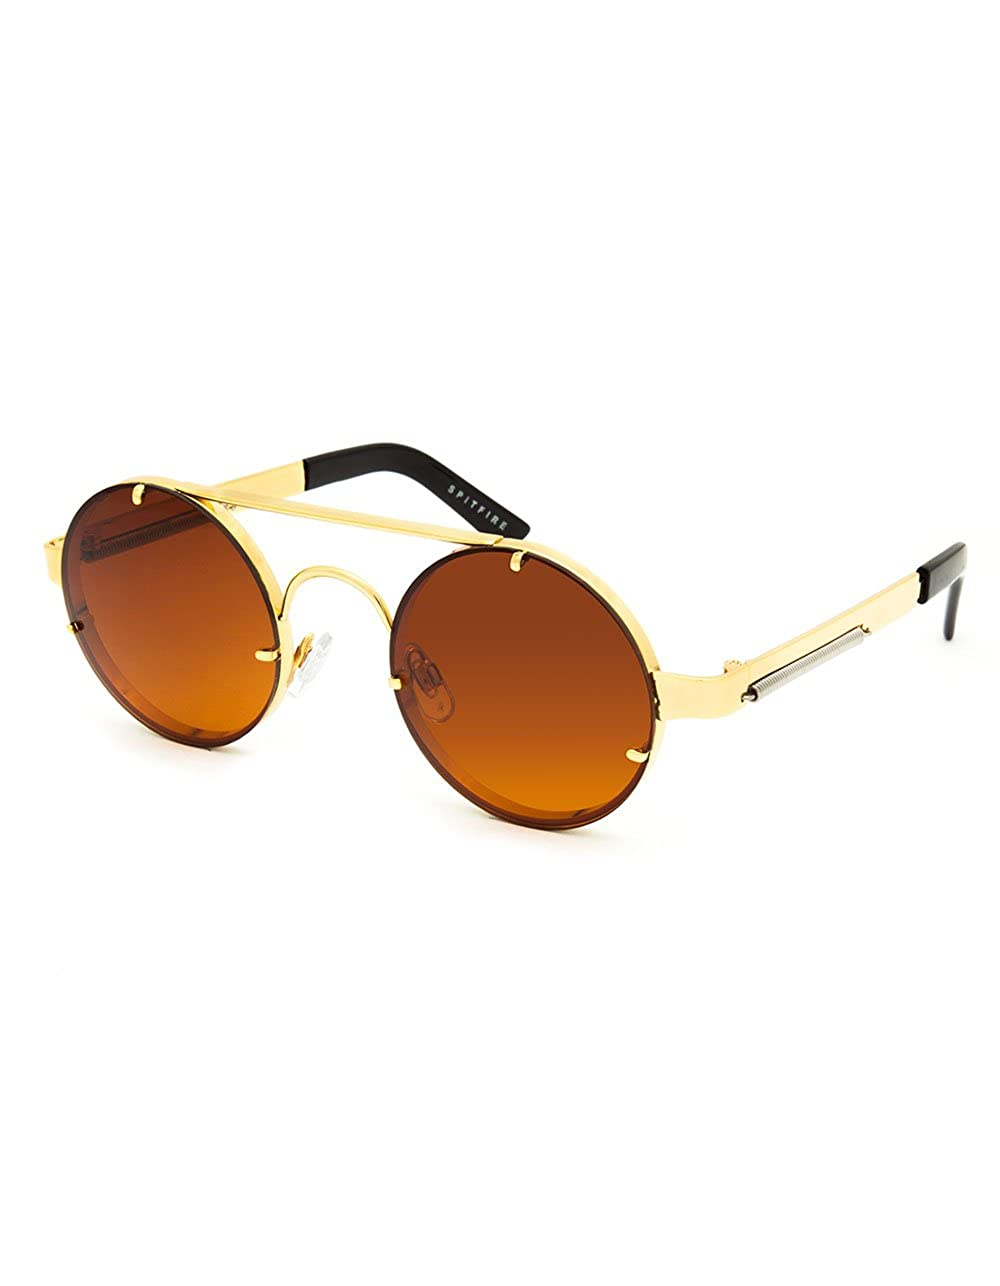 2 ukClothing Sunglasses Lennon SunglassesGoldAmazon co Spitfire vY7gyIf6b